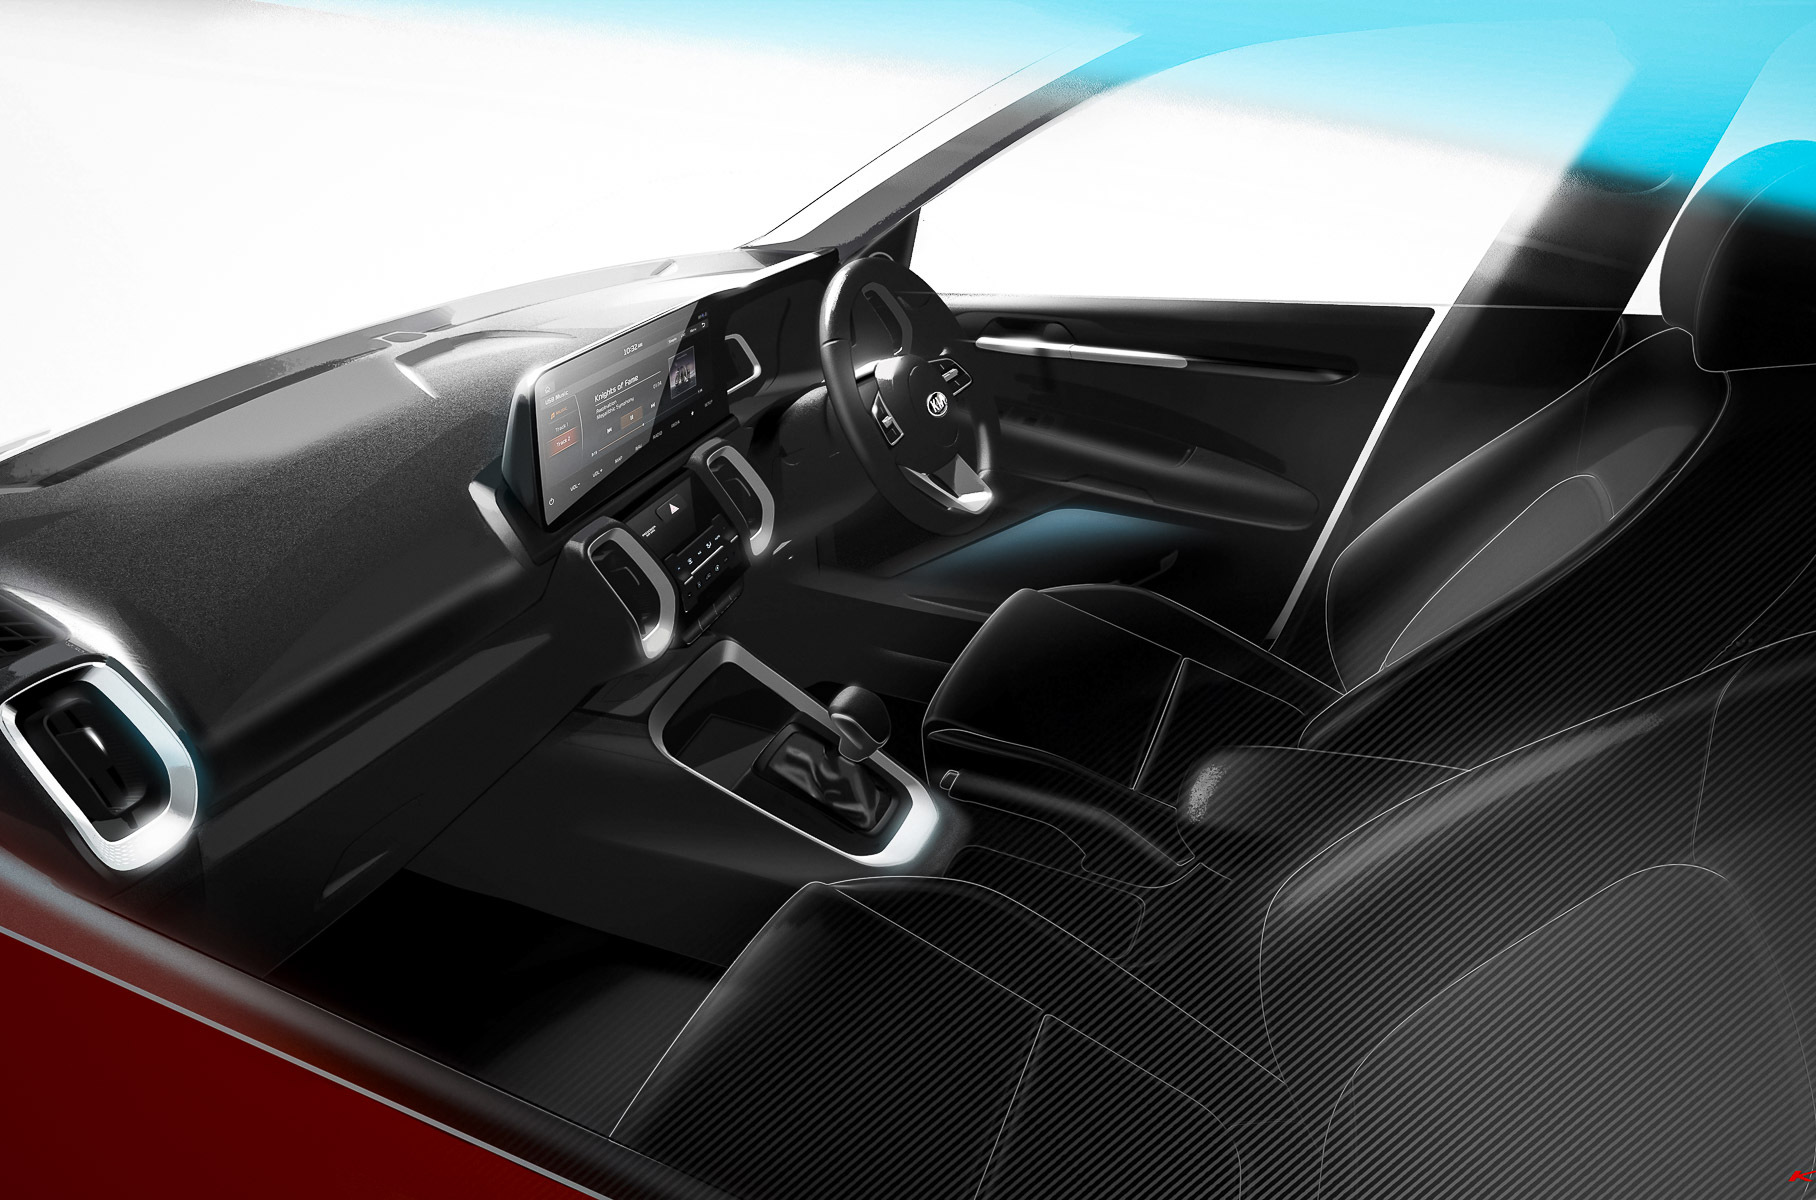 Mere weeks after unveiling its Sonet Concept in India, Kia will be introducing the final production version of the SUV on Friday, August 7, 2020. In the meantime, we can look at two new interior sketches.